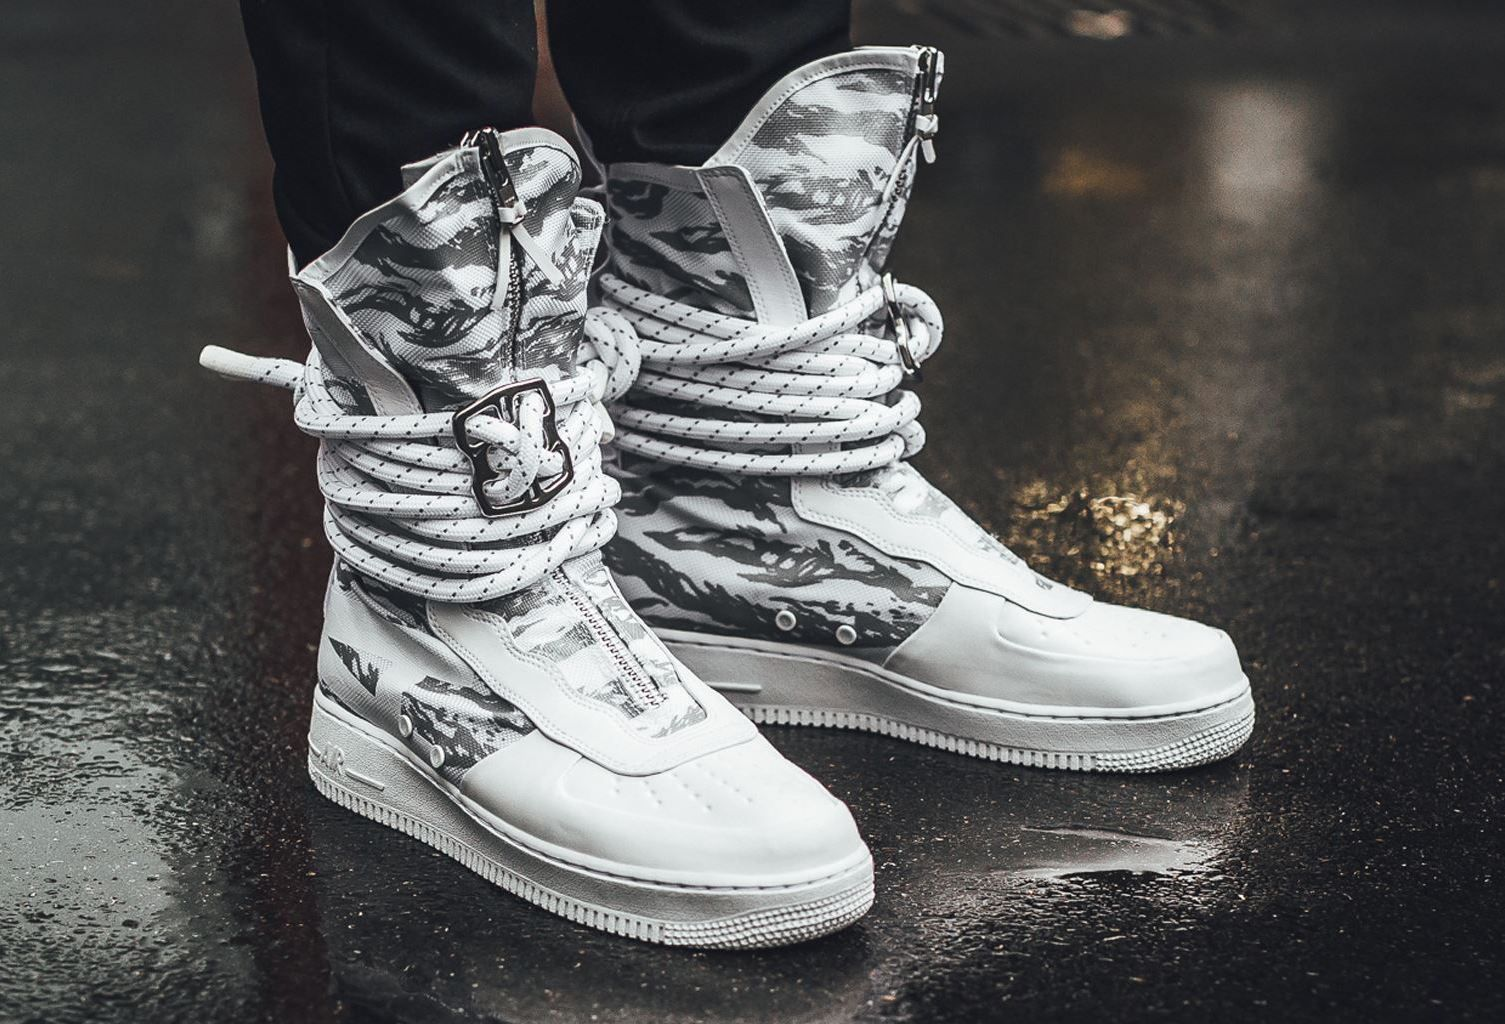 Get The Nike Special Field Air Force 1